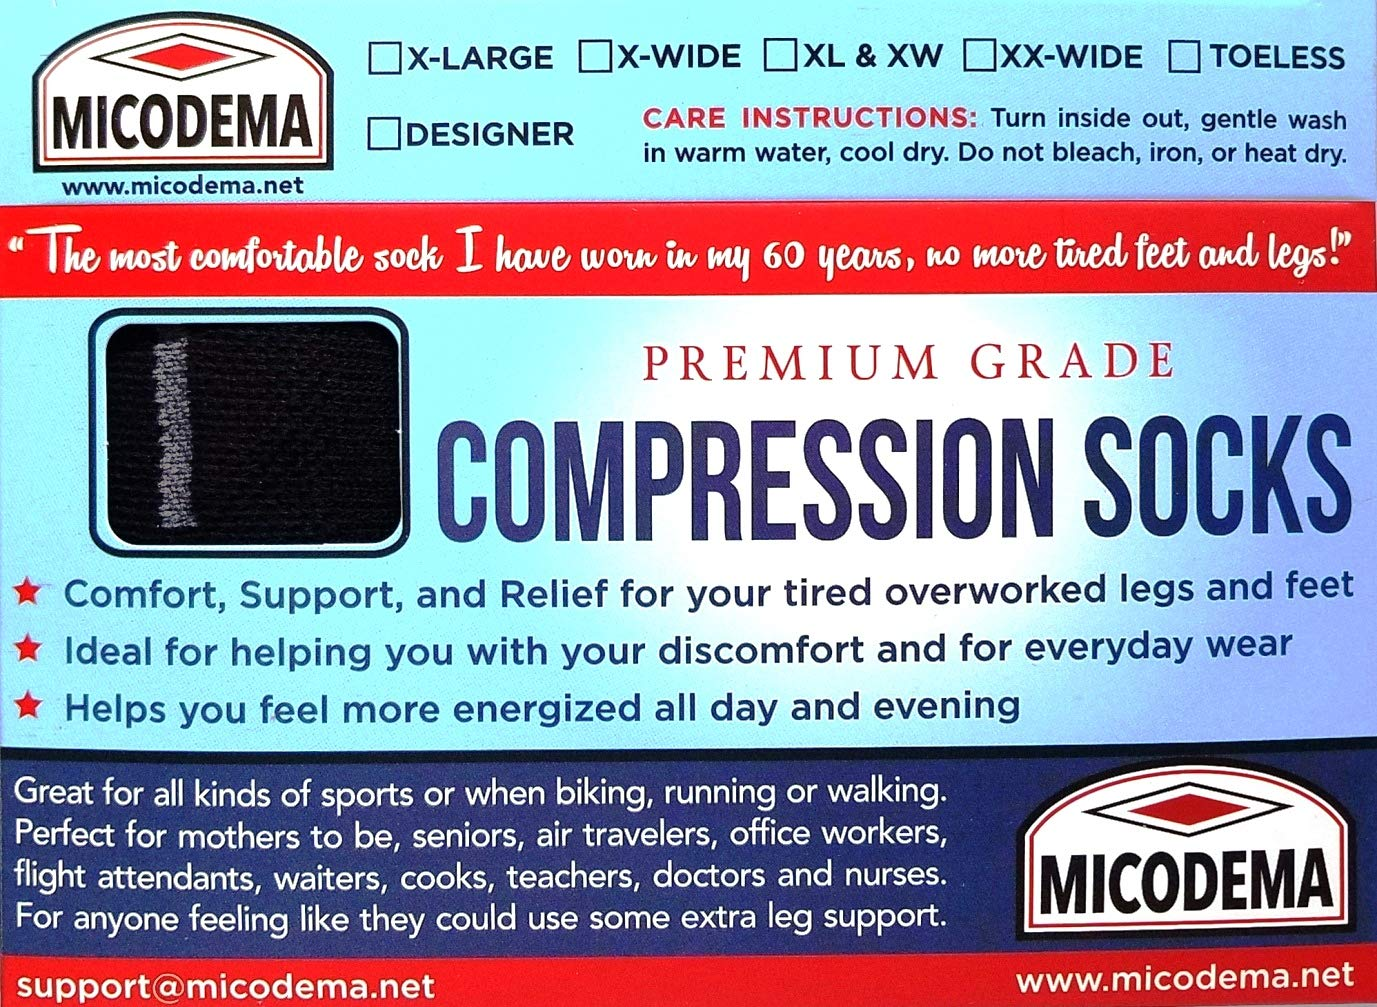 MICODEMA Compression Socks Wide Calf - for Thick Calves with Ankle and Arch  Support | Firm Gradient